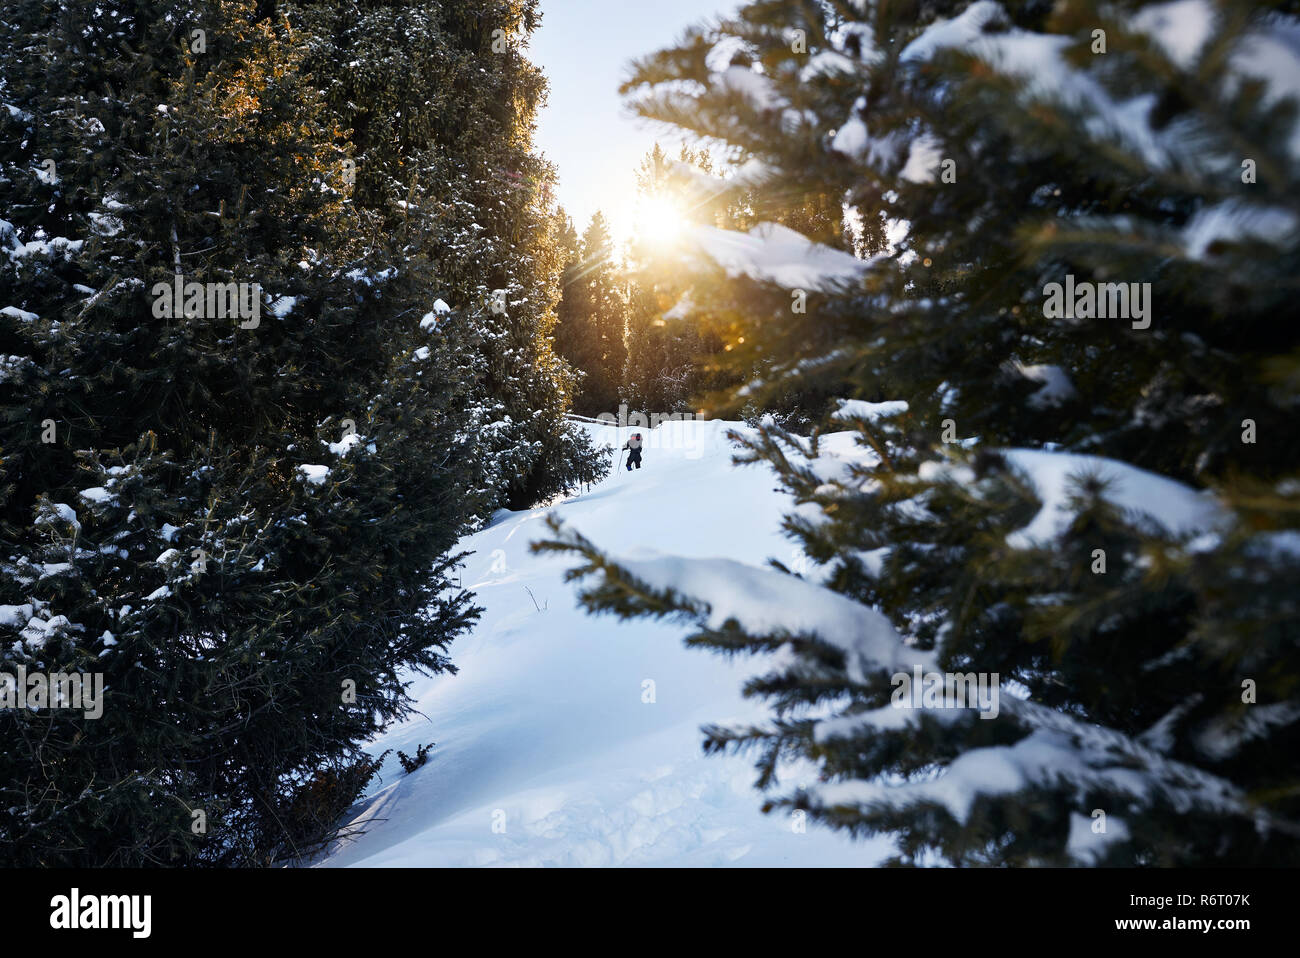 Tourist with backpack in the snowy forest in the mountains - Stock Image